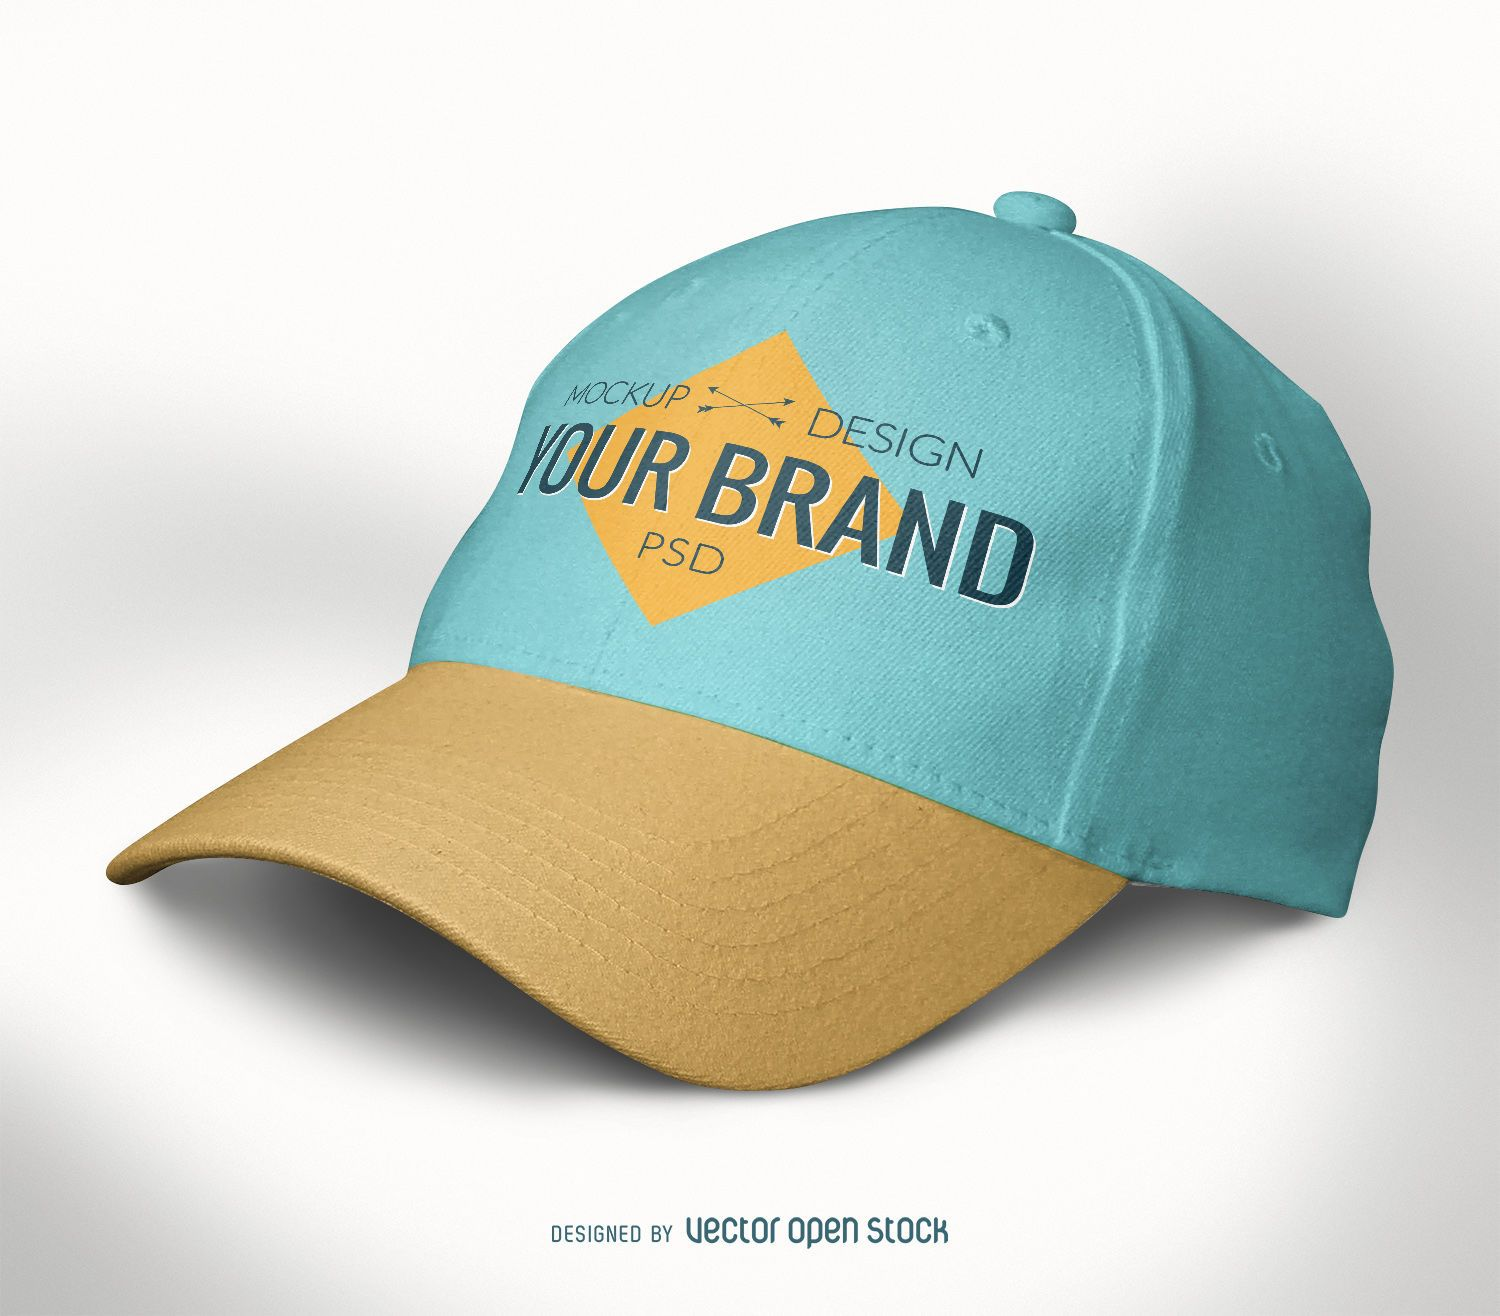 Baseball cap mockup template PSD - PSD download